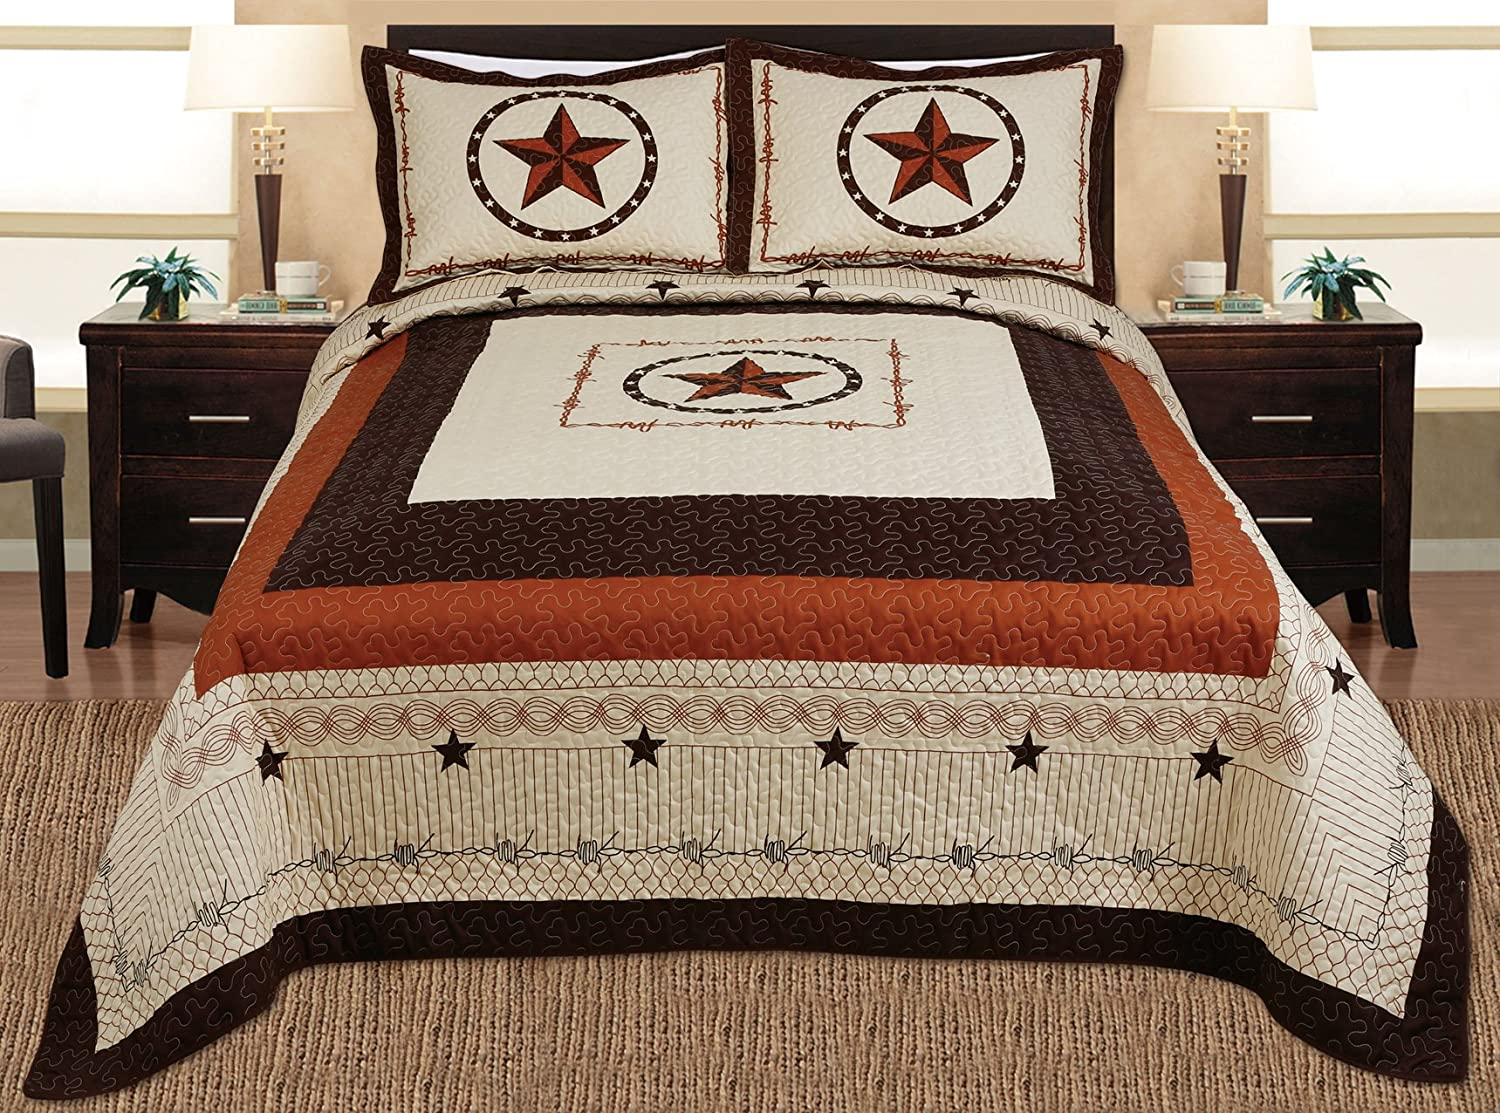 Quilt Bedspread Coverlet Set Full / Queen Size Beige, Brown, Black